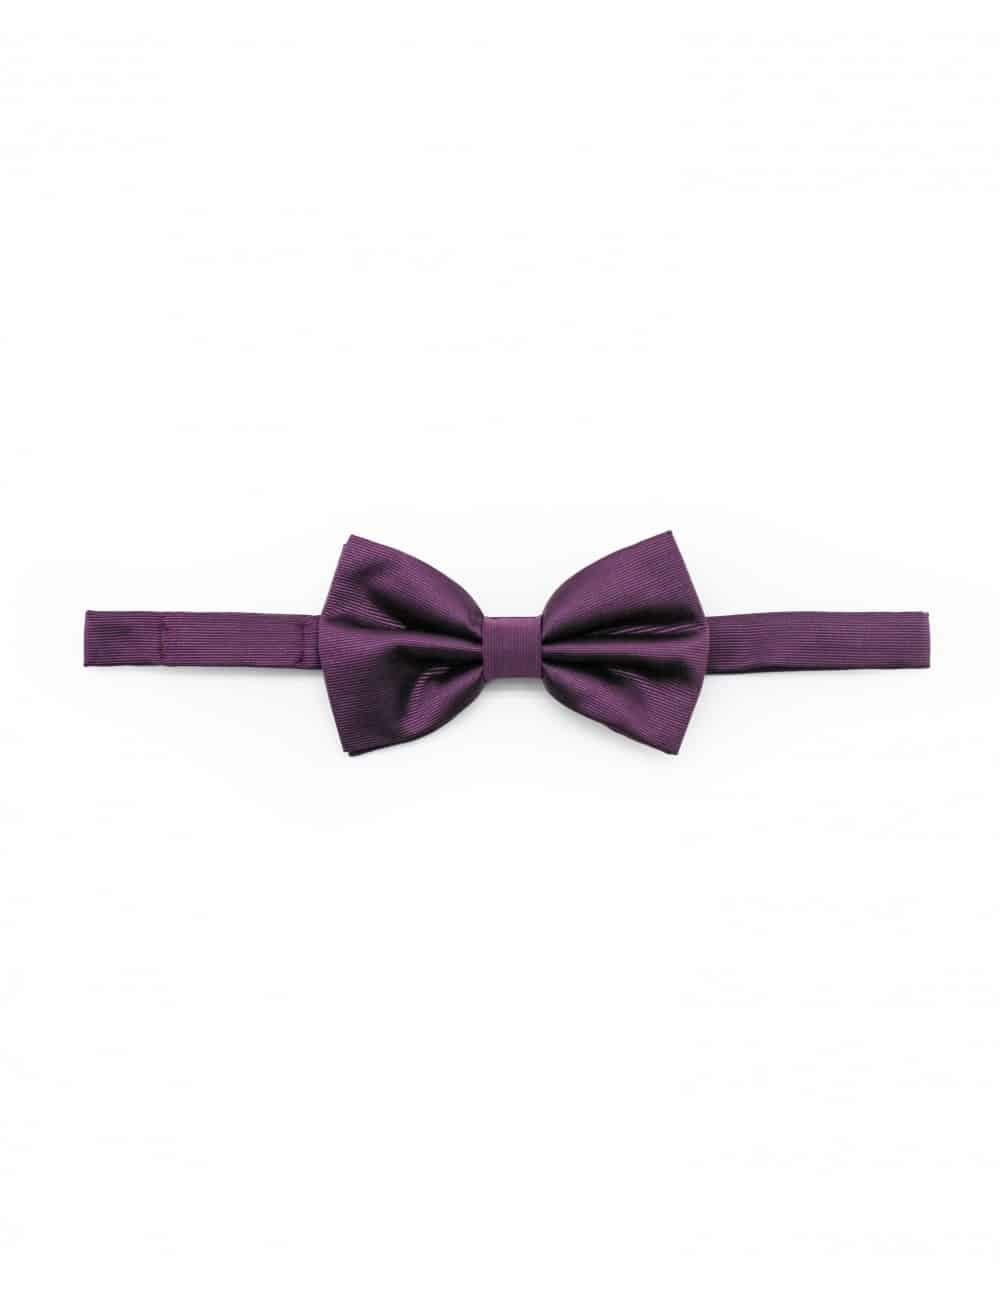 Solid Grape Royale Woven Bowtie WBT10.5